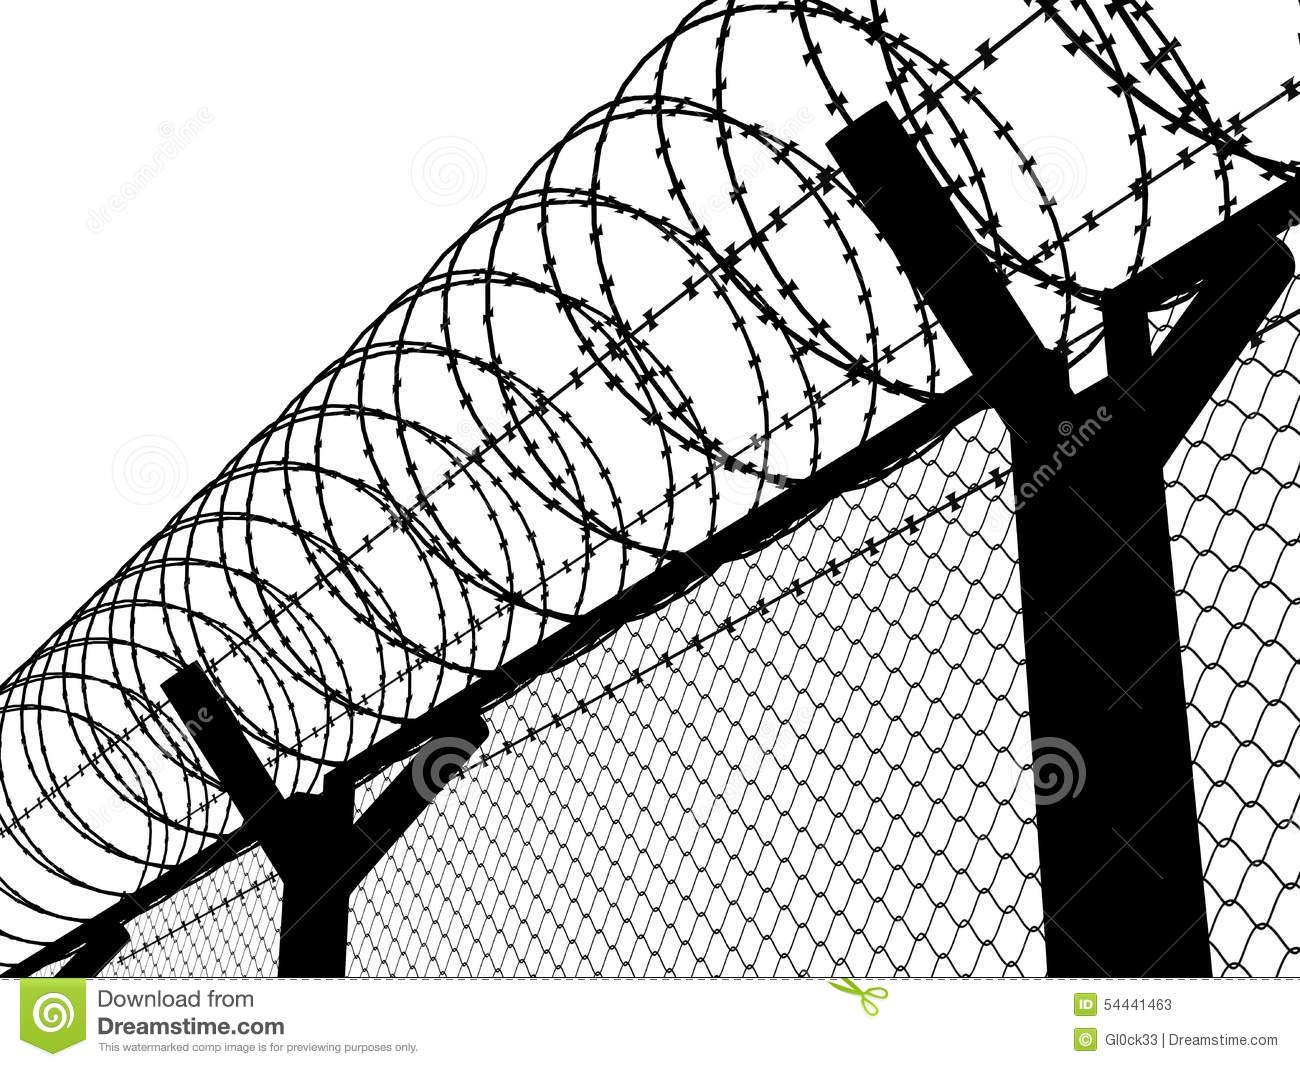 Concentration Camp Clipart